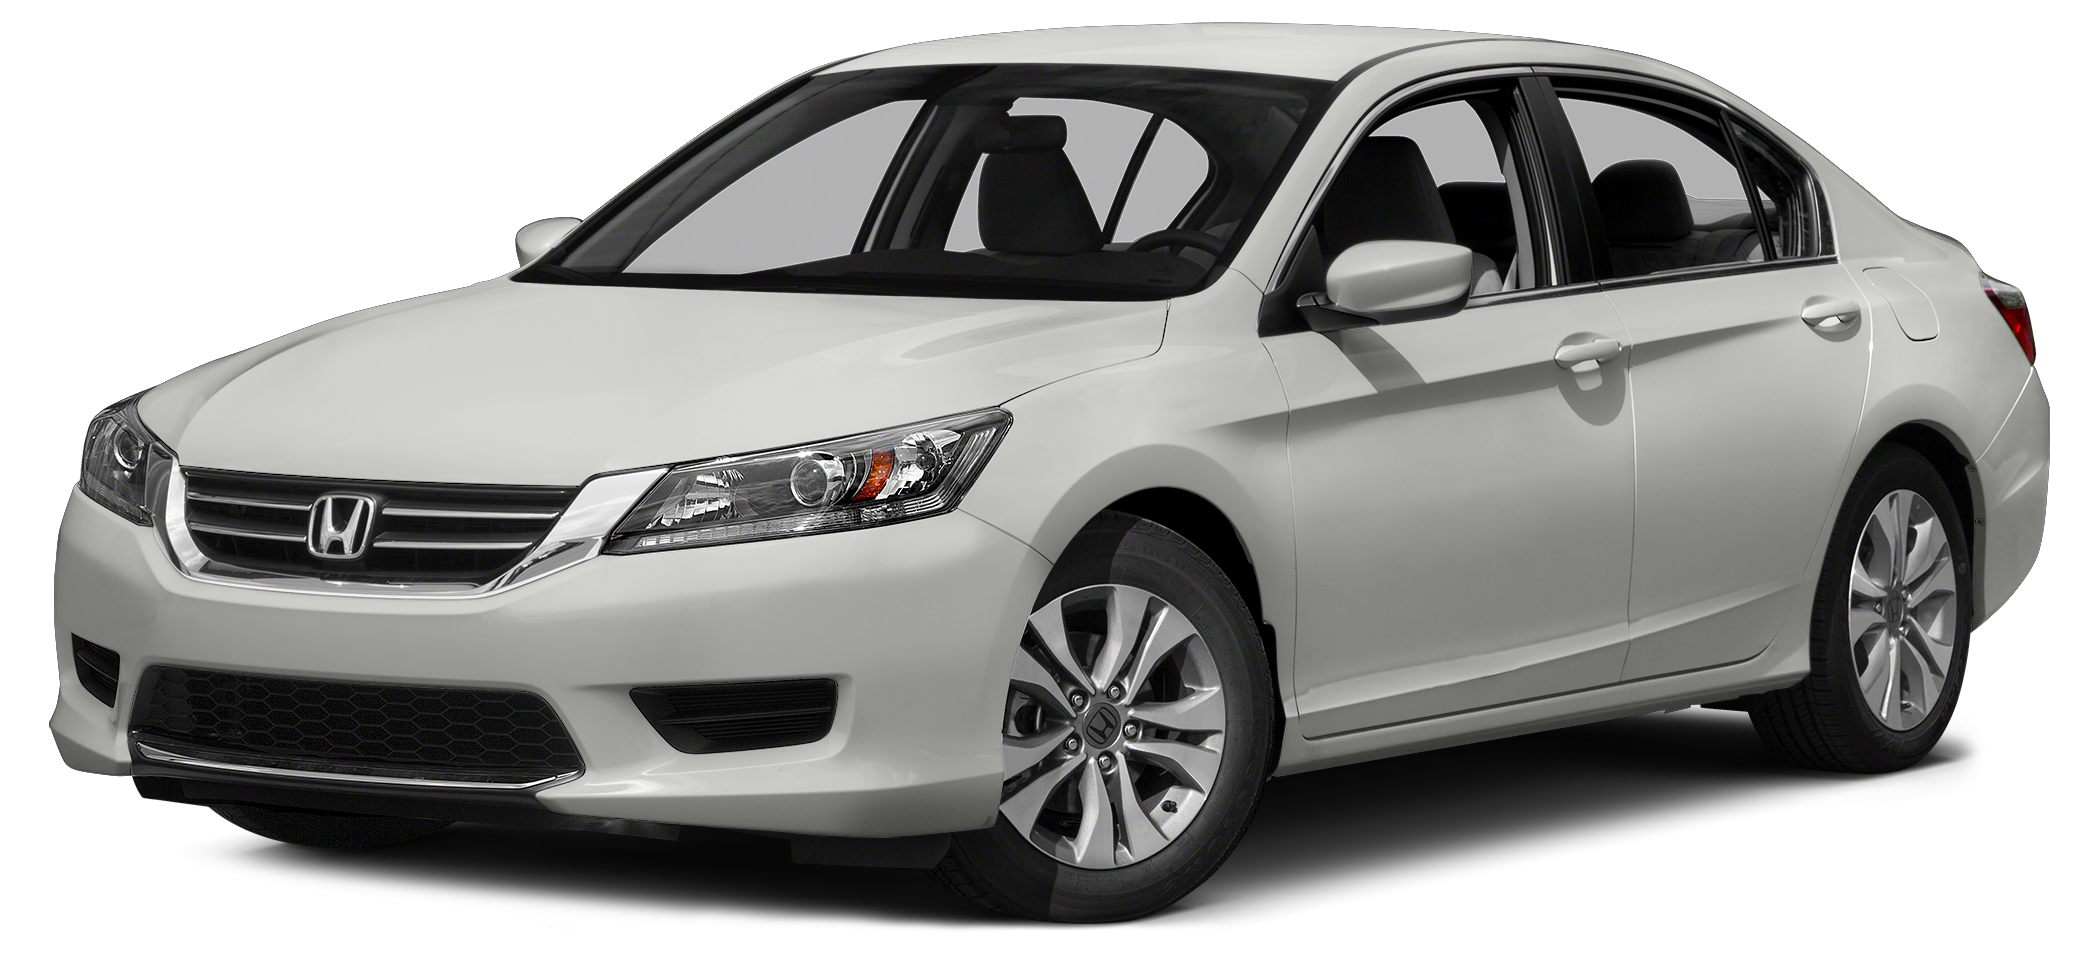 2013 Honda Accord LX Miles 35437Color White Orchid Pearl Stock 141567 VIN 1HGCR2F37DA141567